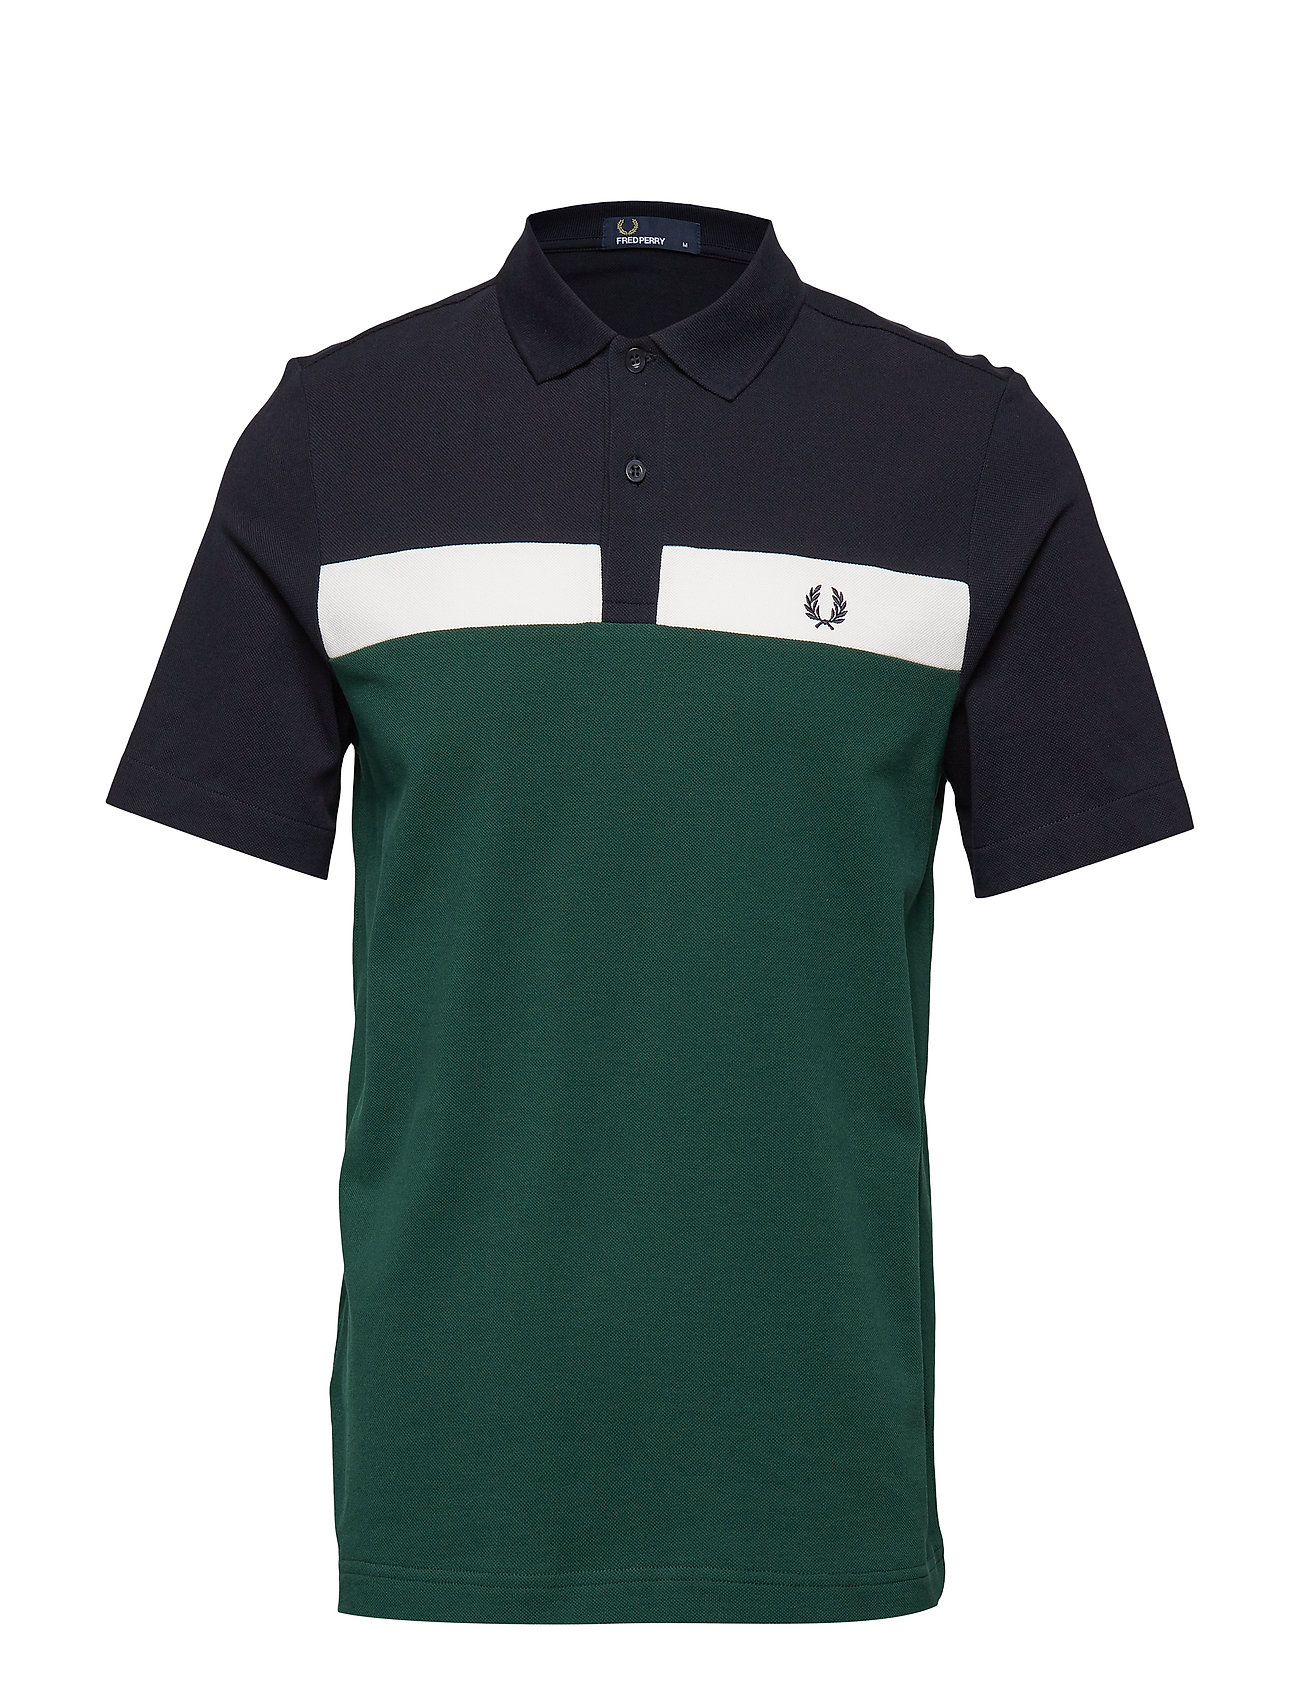 Fred Perry CONTRAST PIQUE SHIRT - IVY